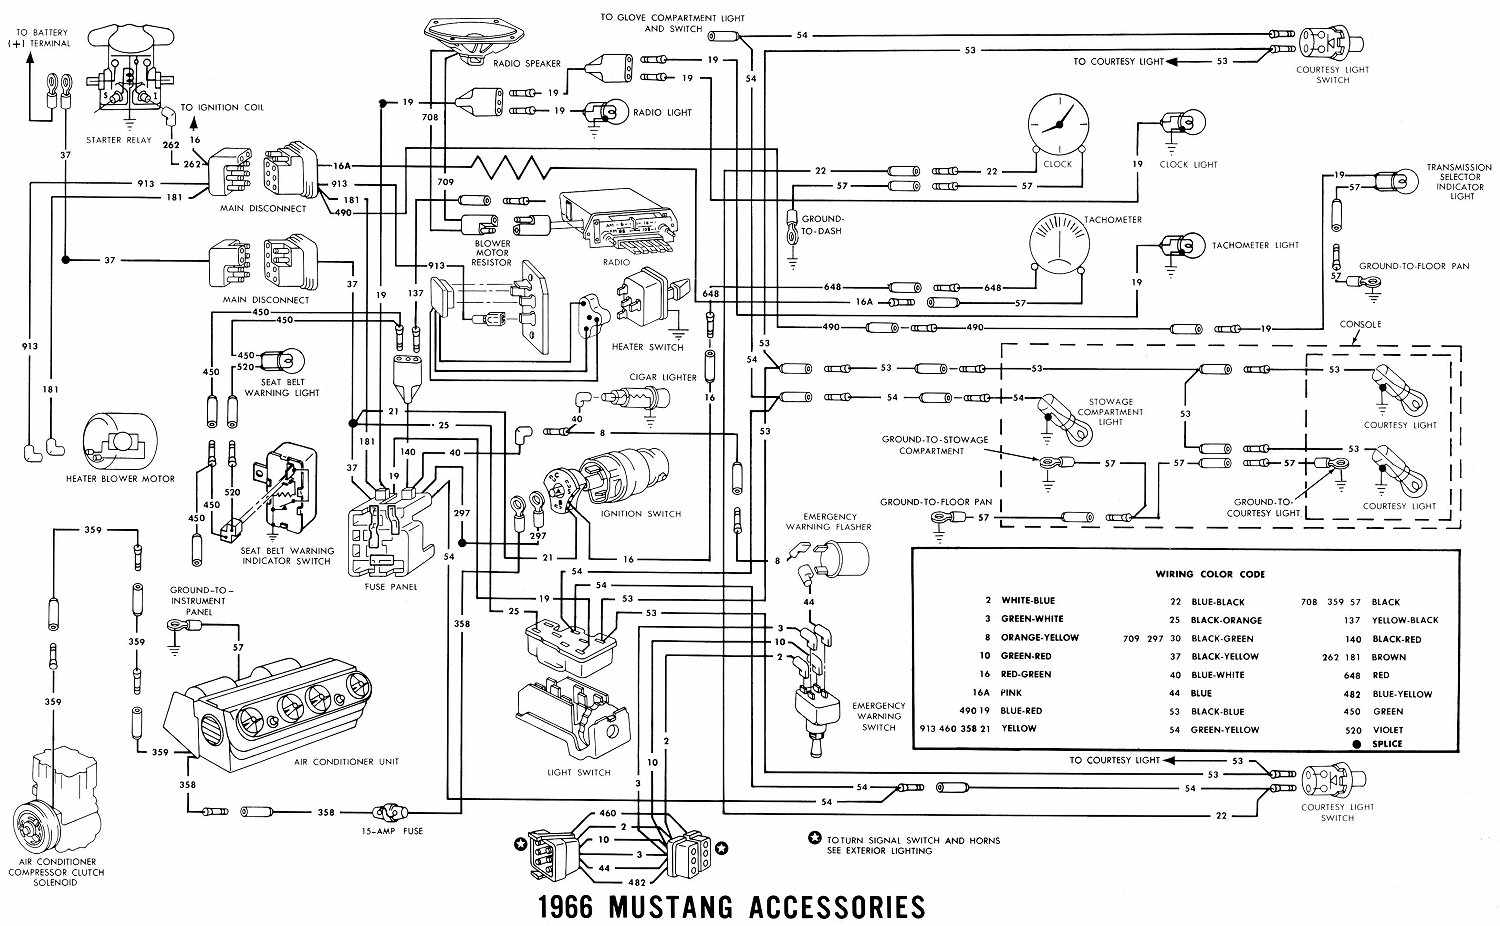 1966 ford mustang accessories electrical wiring diagrams 1994 mustang gt fuse box diagram 2007 mustang gt fuse box diagram